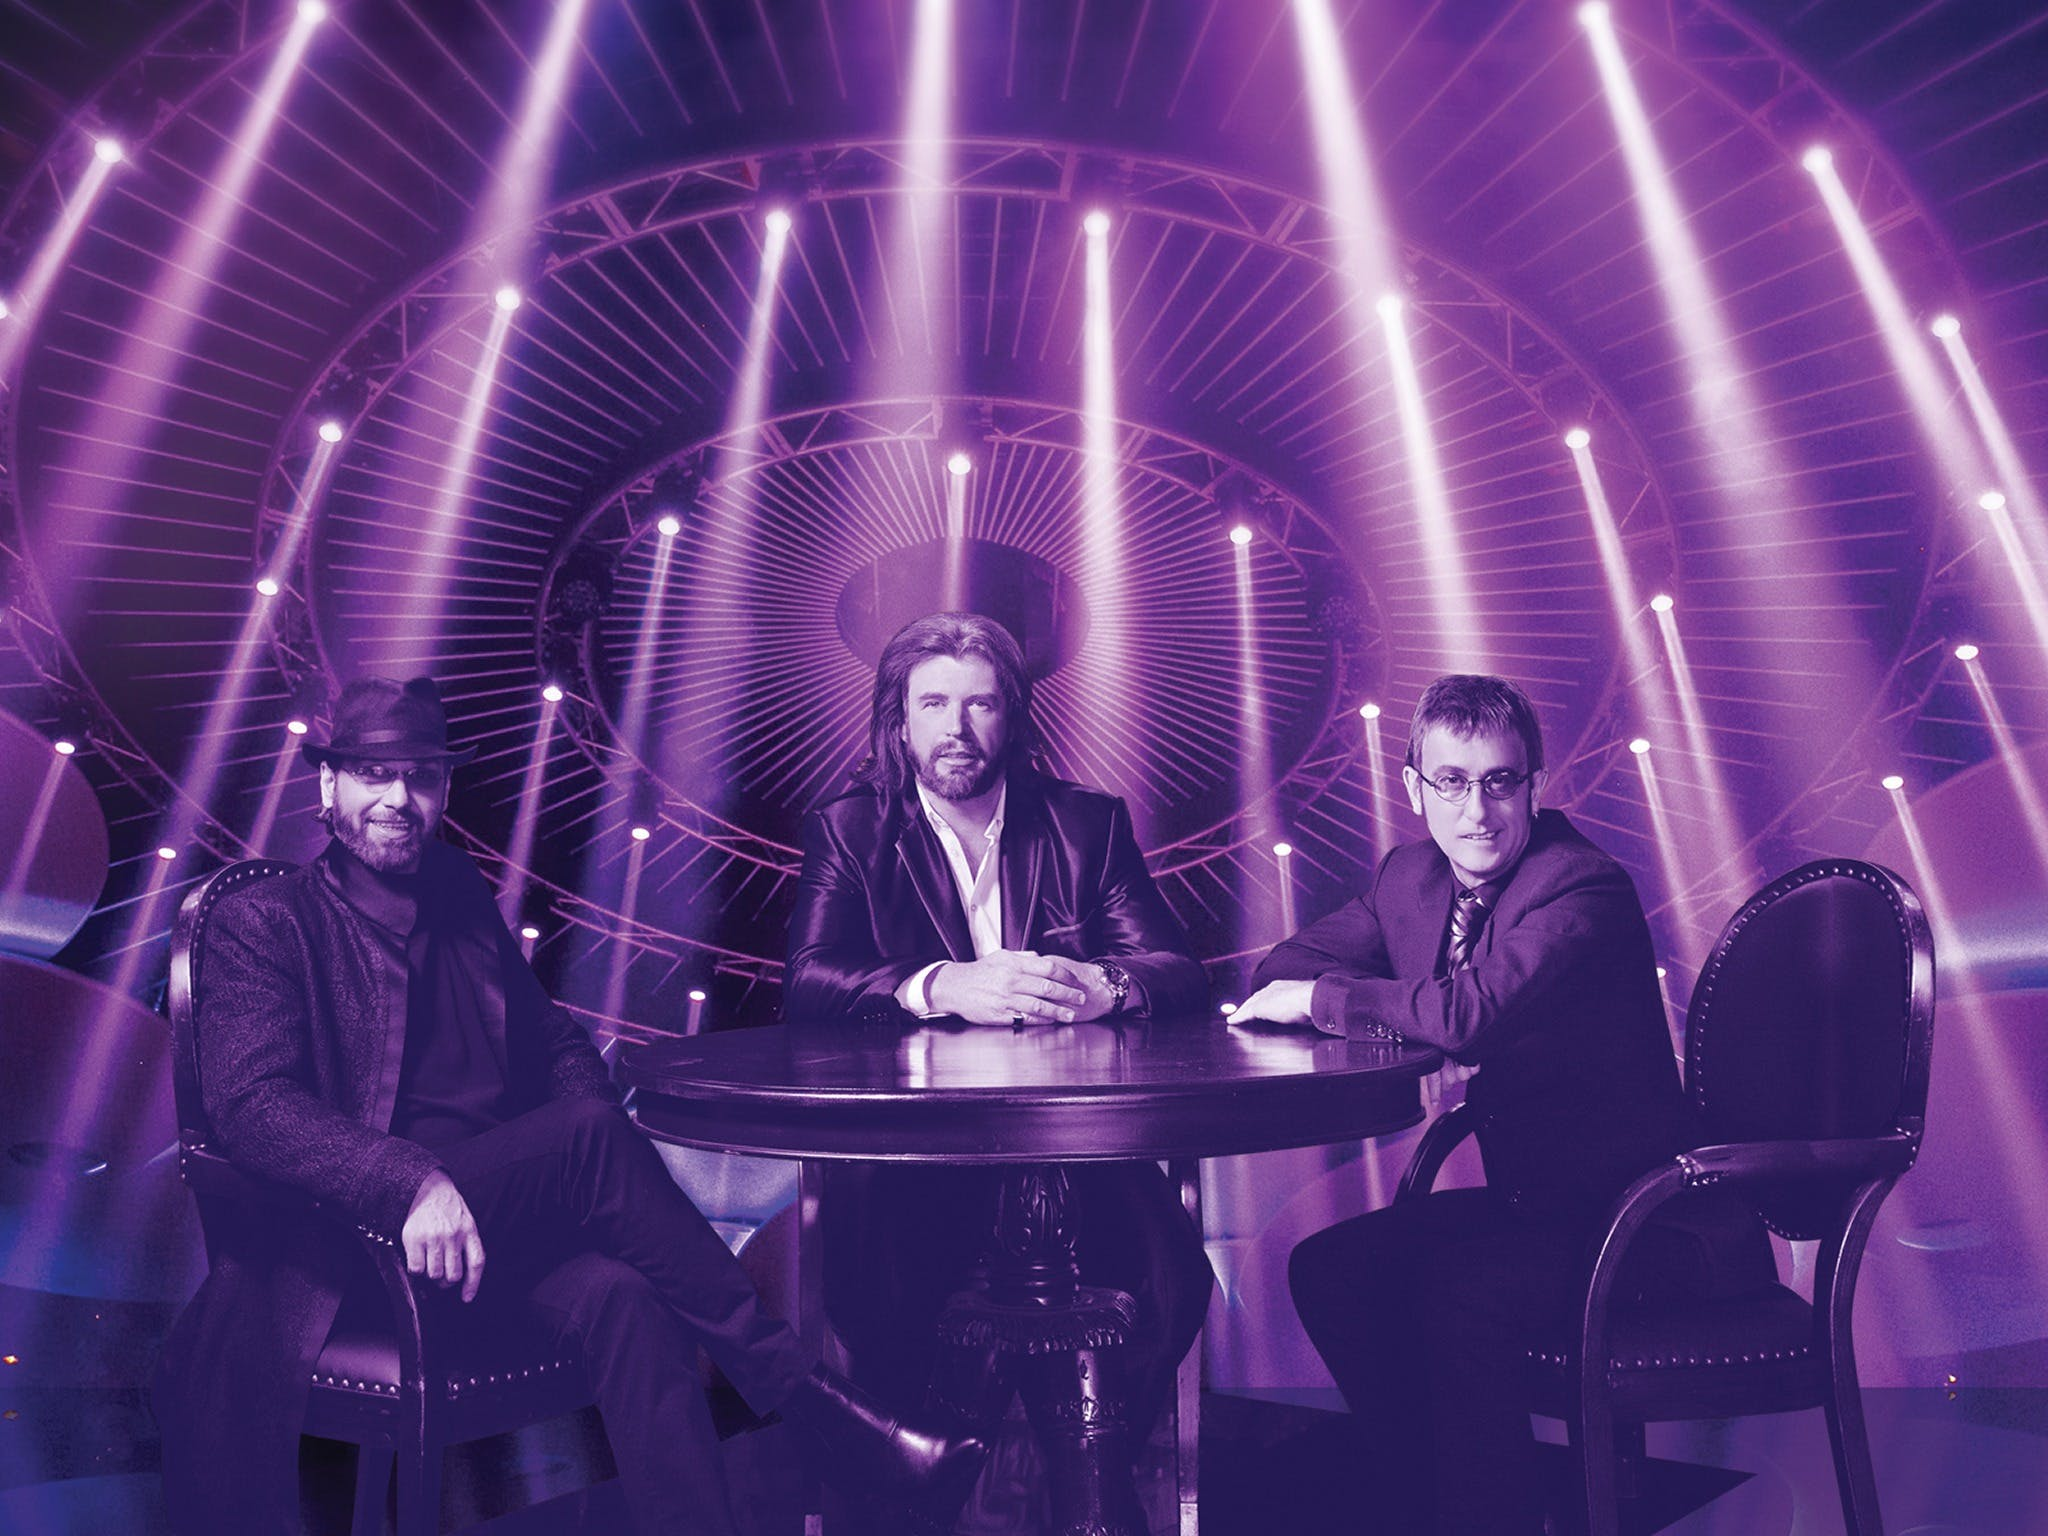 The Australian Bee Gees Show - 25th Anniversary Tour - Bathurst - Byron Bay Accommodations